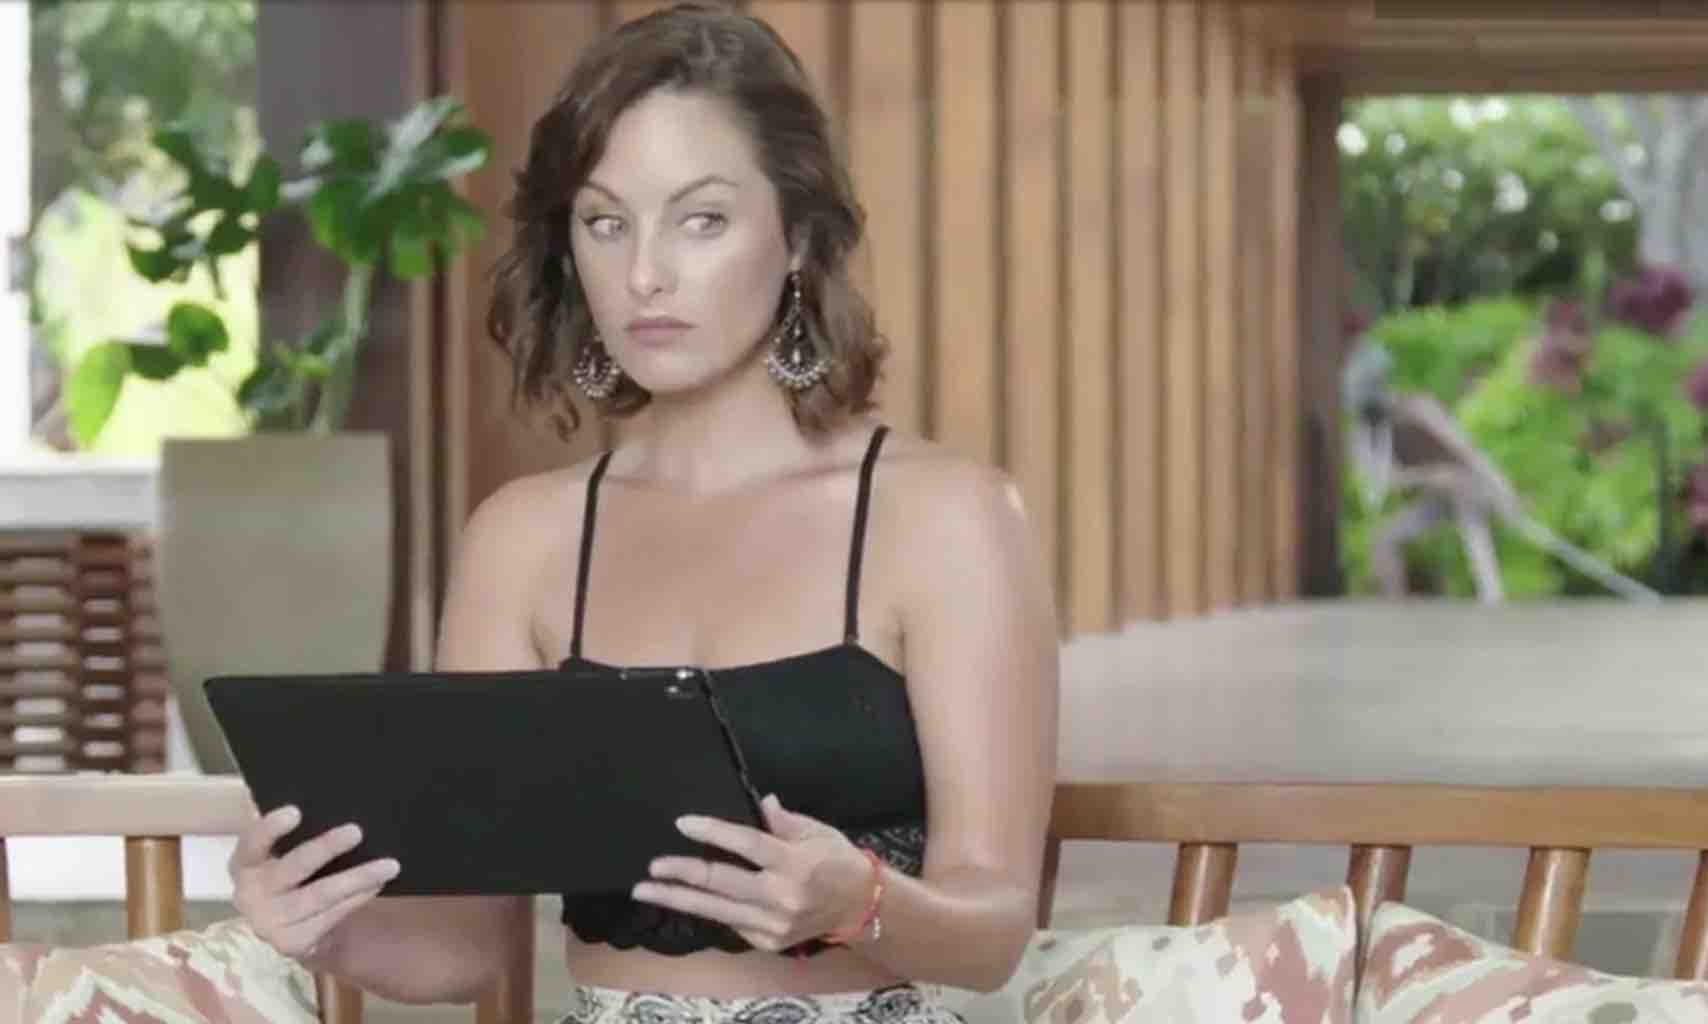 Temptation Island Season 3 Episode Recap: Message In A Box